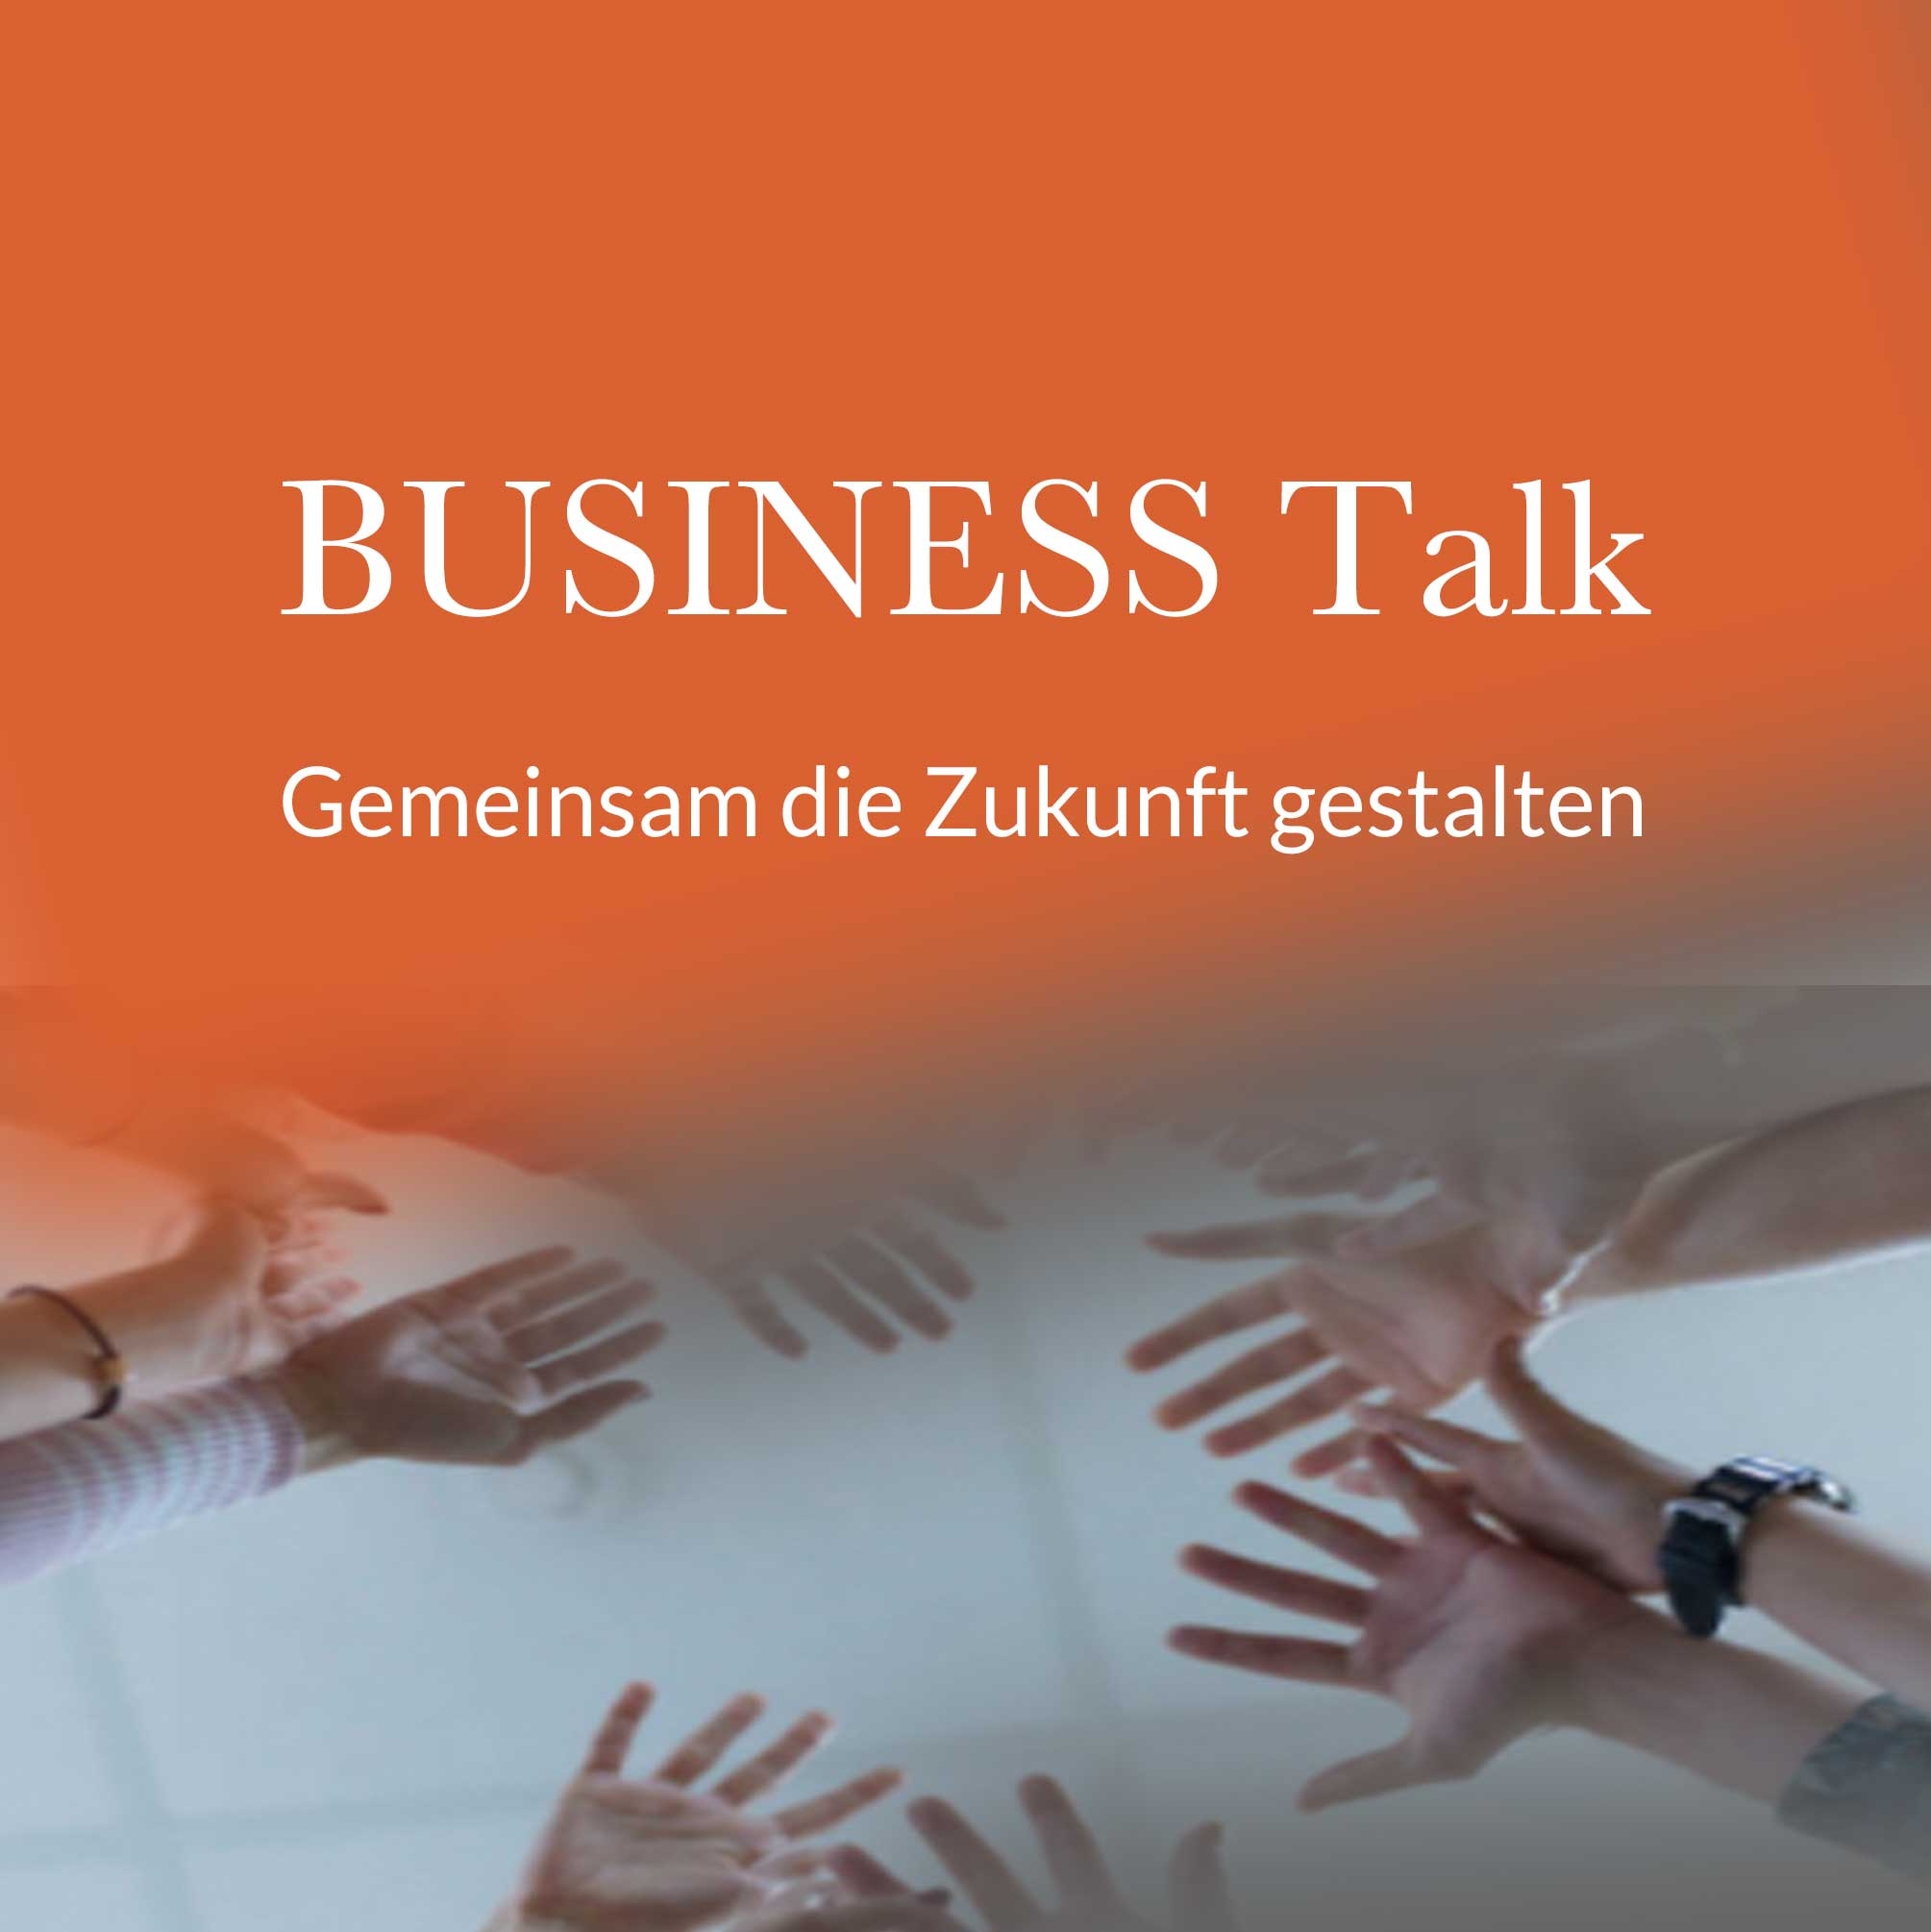 Business Talk Silvia Chytil